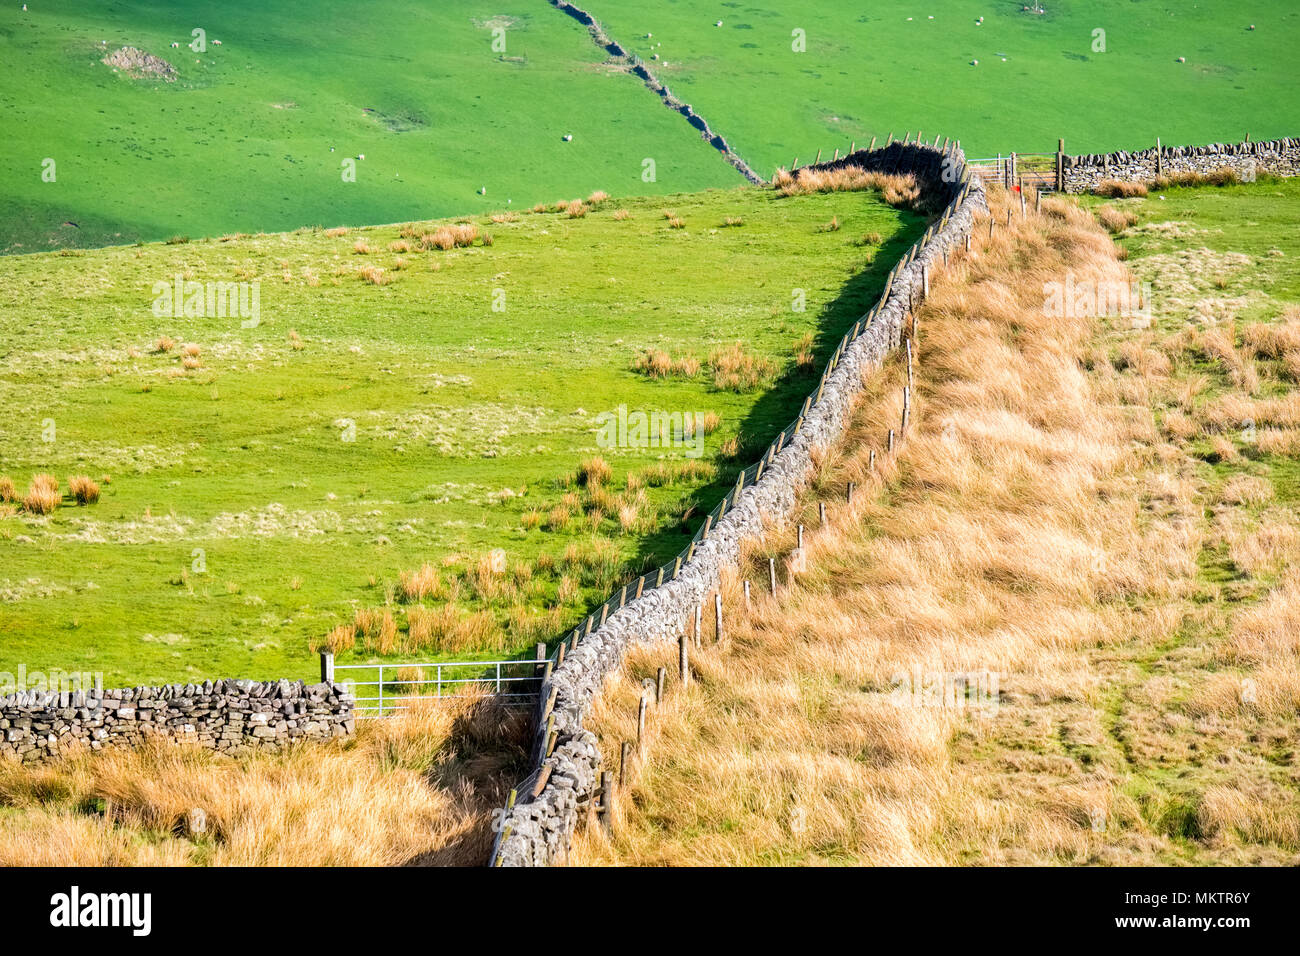 Rough upland pasture and drystone walls, Peak District, Derbyshire - Stock Image